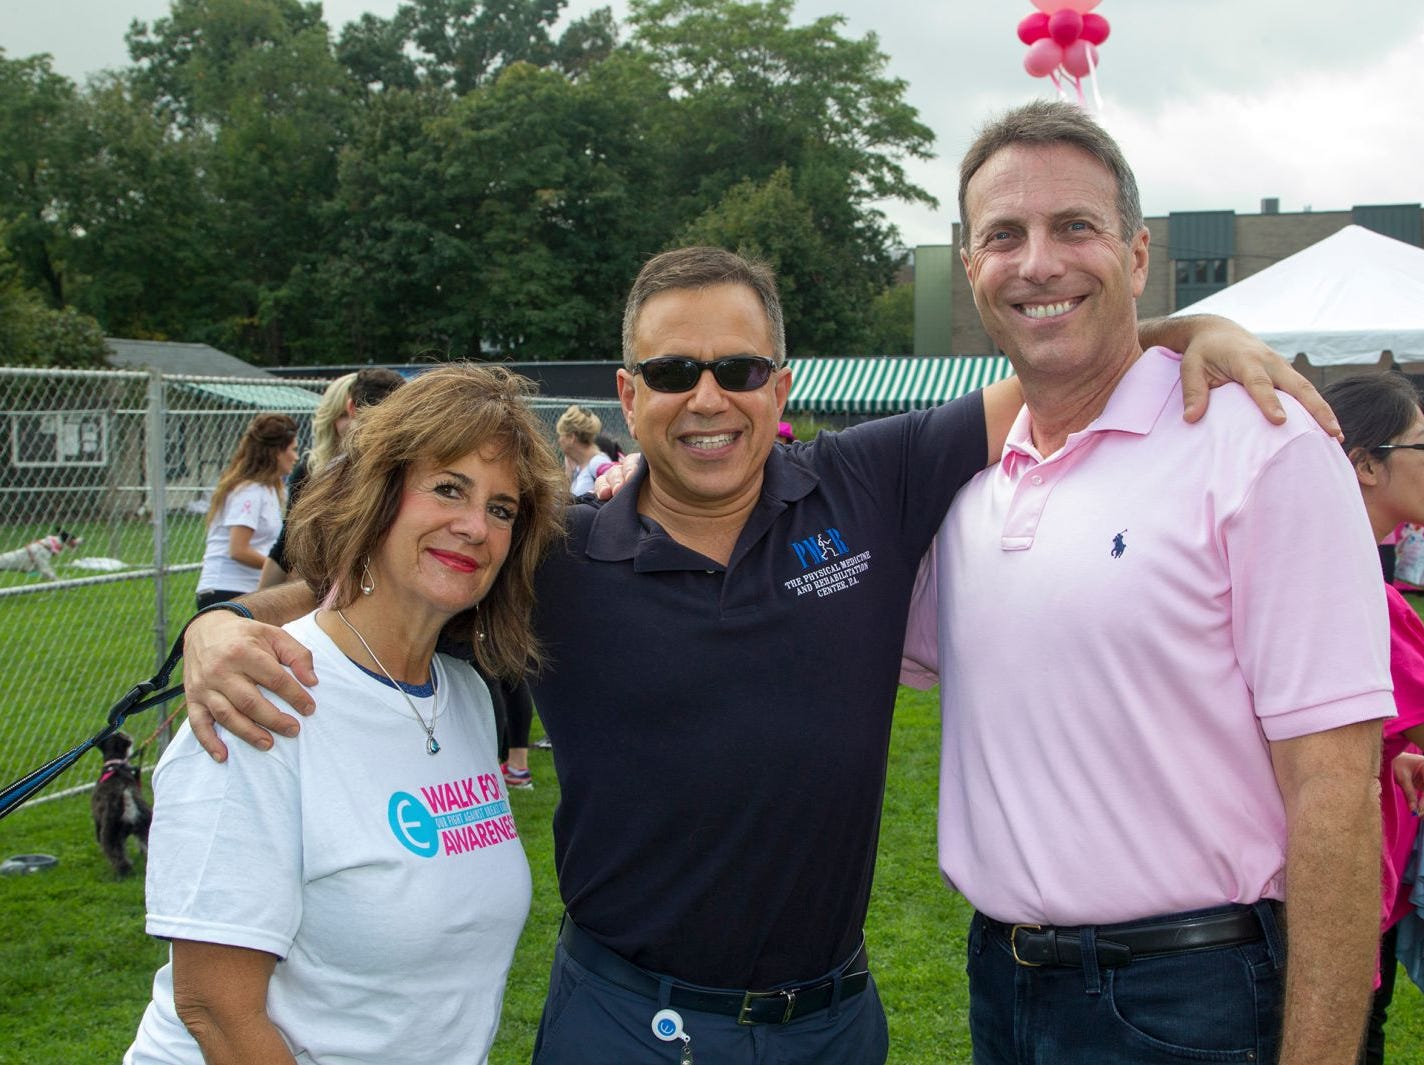 Peggy DelVilla, Dr. Jeff Pabell, Jay Nadel. Englewood Health Foundation hosted its 2018 Walk for Awareness and Susan Lucianna Memorial Dog Walk dedicated in memory of Walk for Awareness co-founder Paul Fader, Esq. 10/07/2018